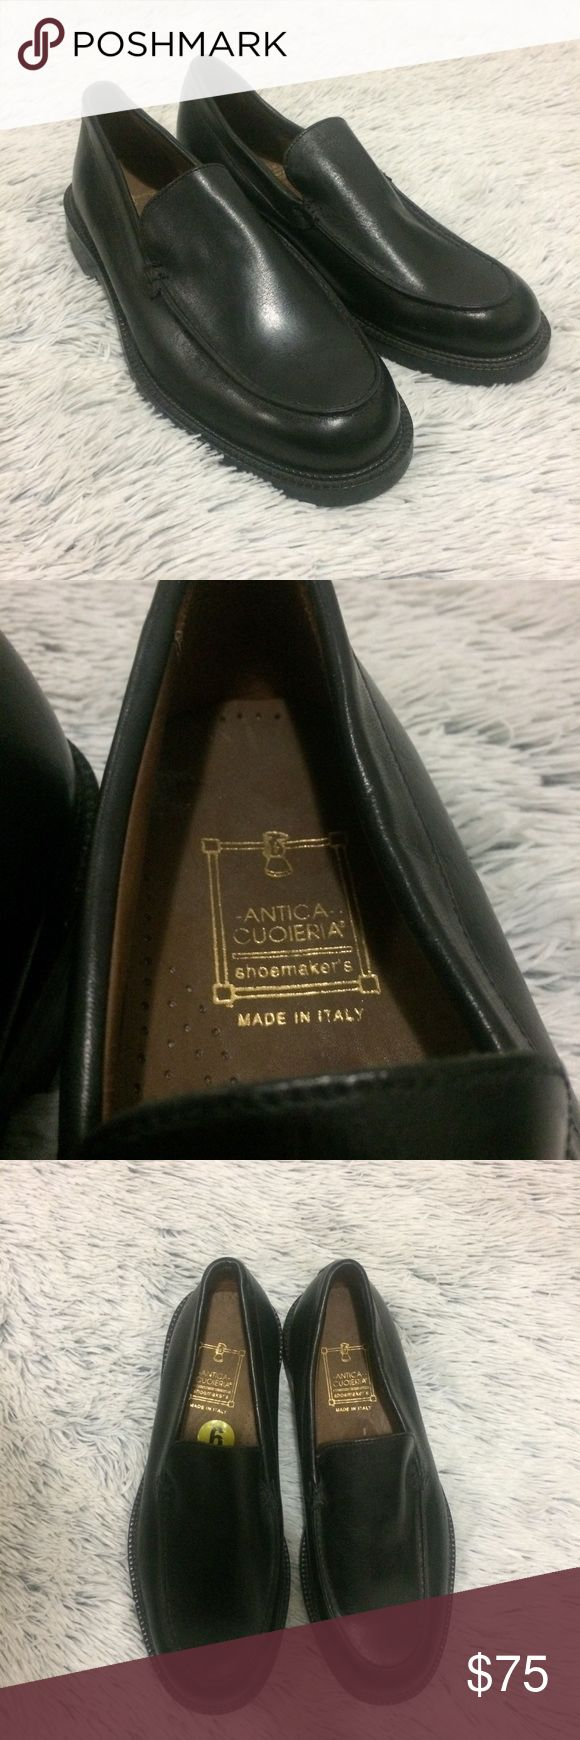 Host Pick!!! Men's Italian Slip-On Loafers Absolutely amazing loafers! Italian leather, made in Italy, no flaws or stains, still has clean size tag on the inside. Size 9. Would make a great gift for your stylish bf/hubby! Soles have a bit of wear, but it just seems to be wear from sitting in the closet since they've never been worn. Plus, leather soles can last and Last and last  I'm not sure what the original price was for these, but they were purchased on sale for $118. Smoke free home…